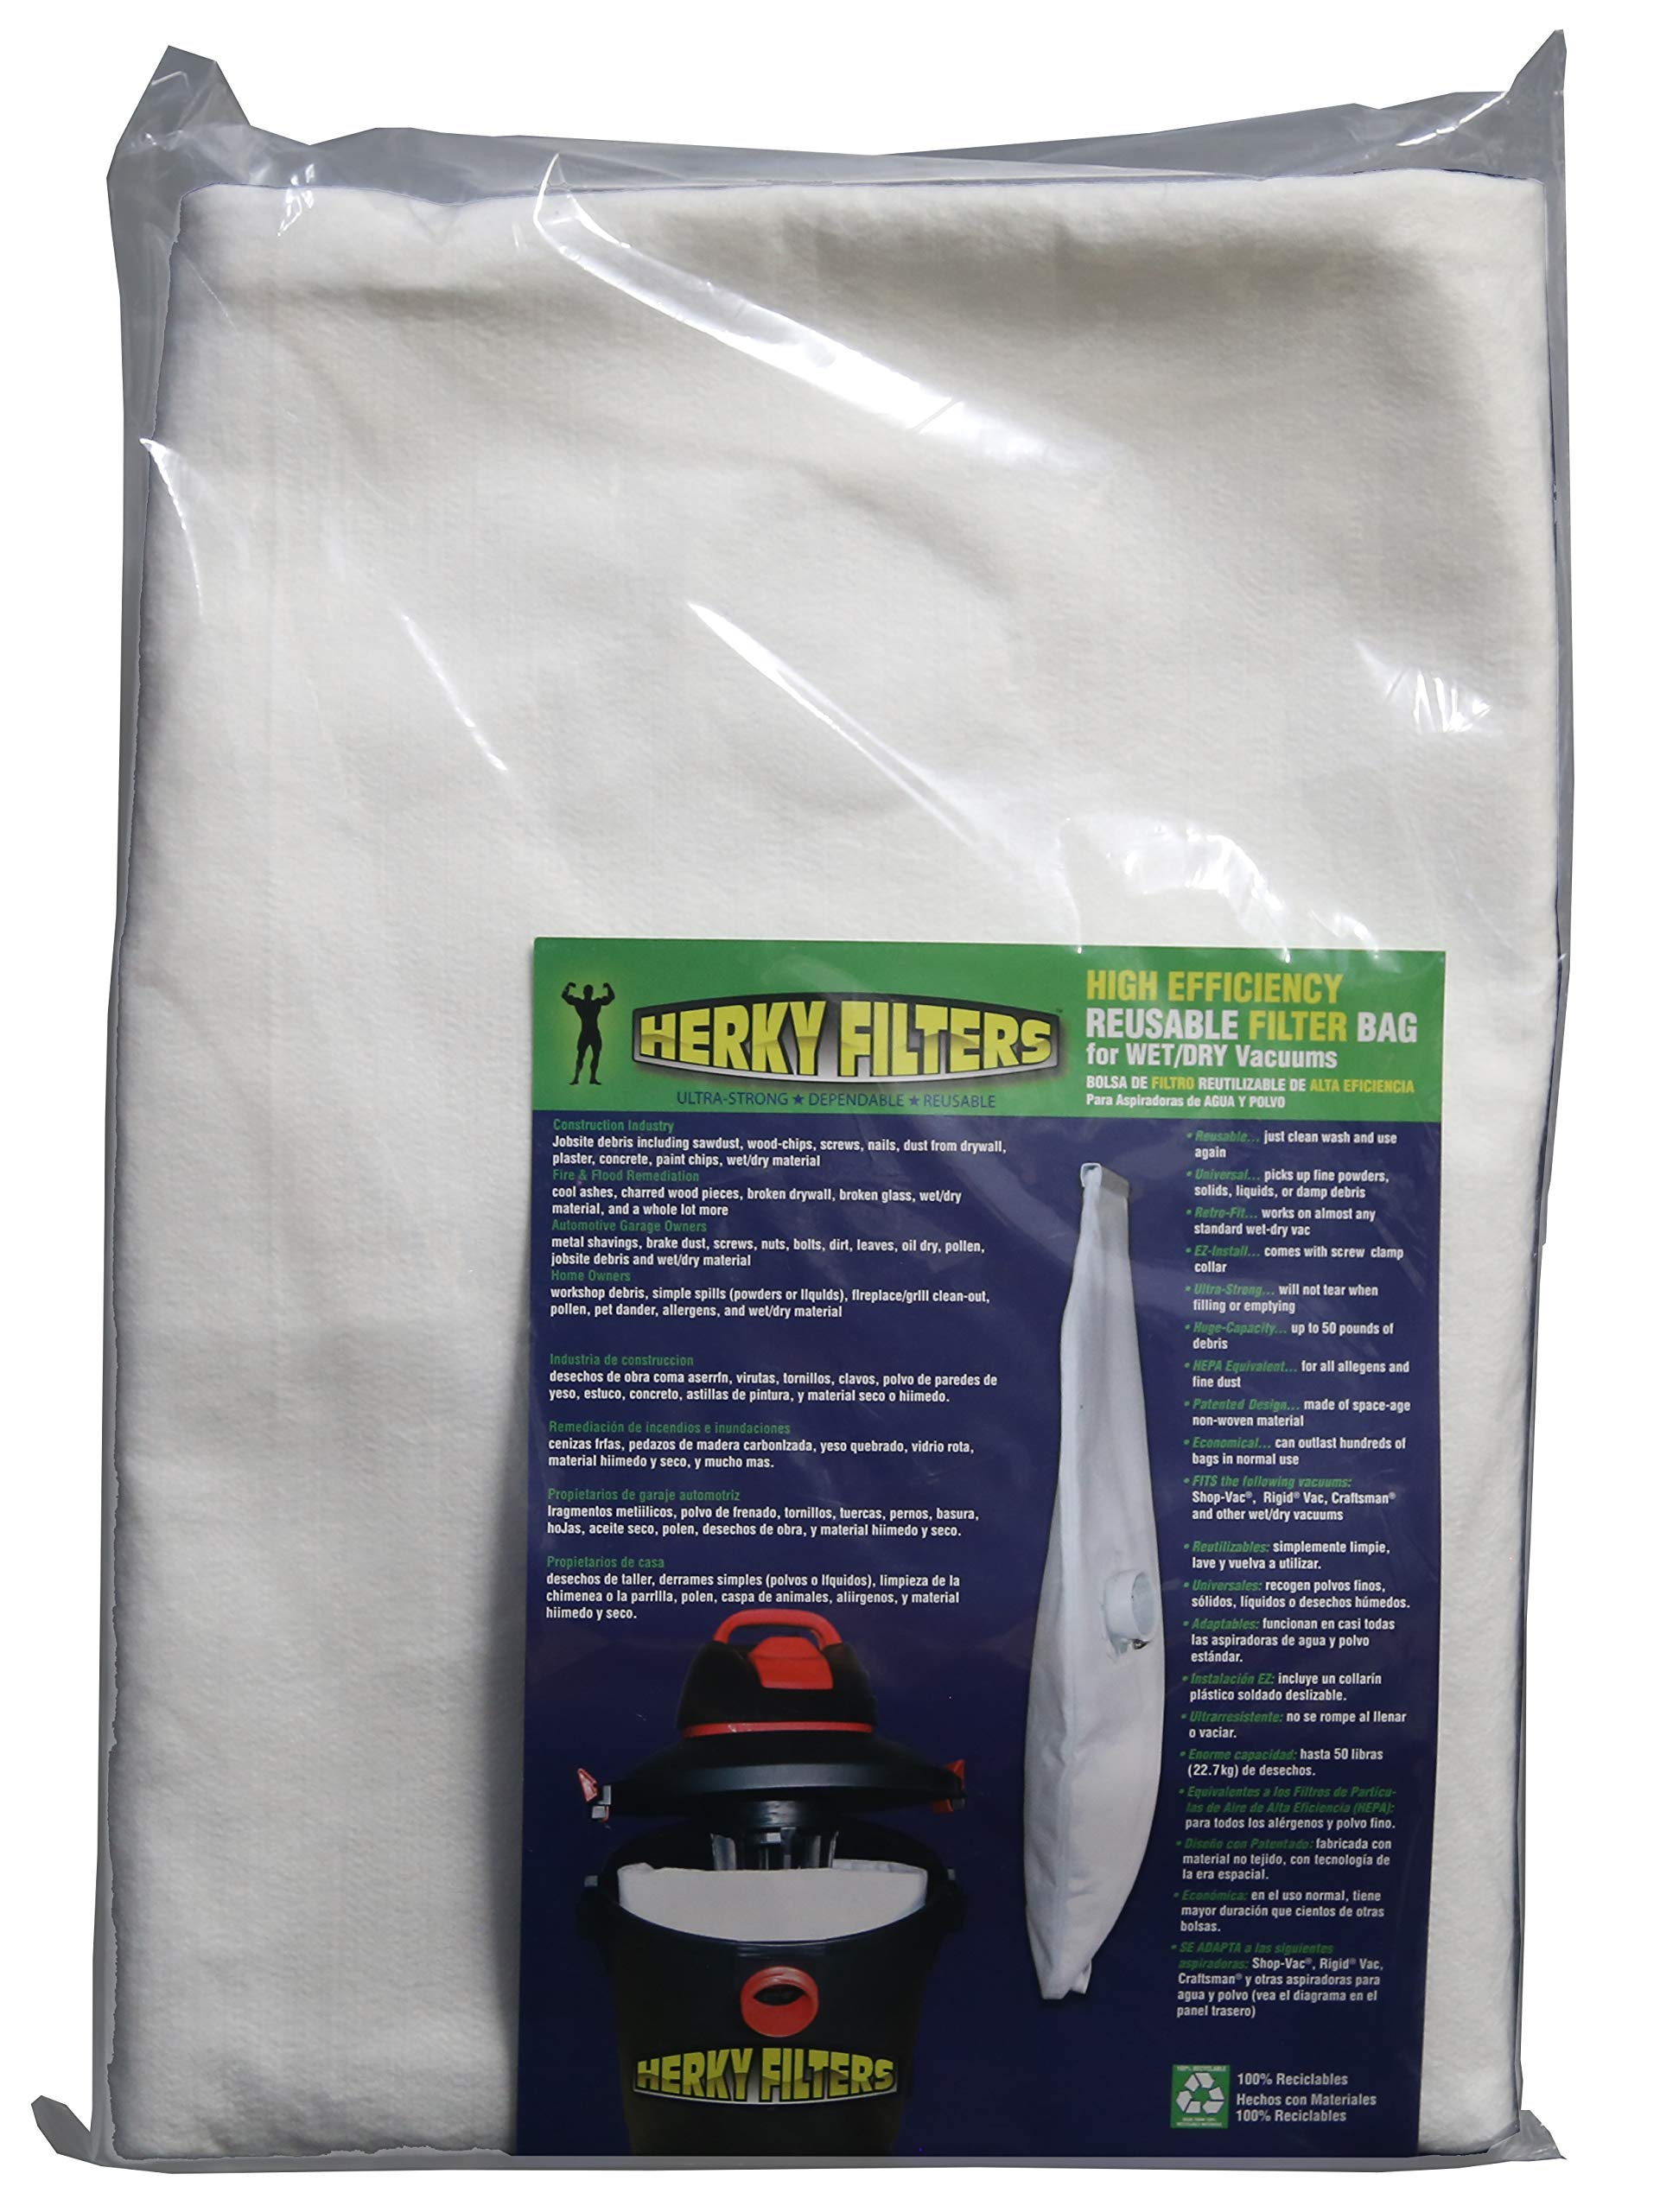 Large Reusable Filter Bag for Wet/dry Vacuums